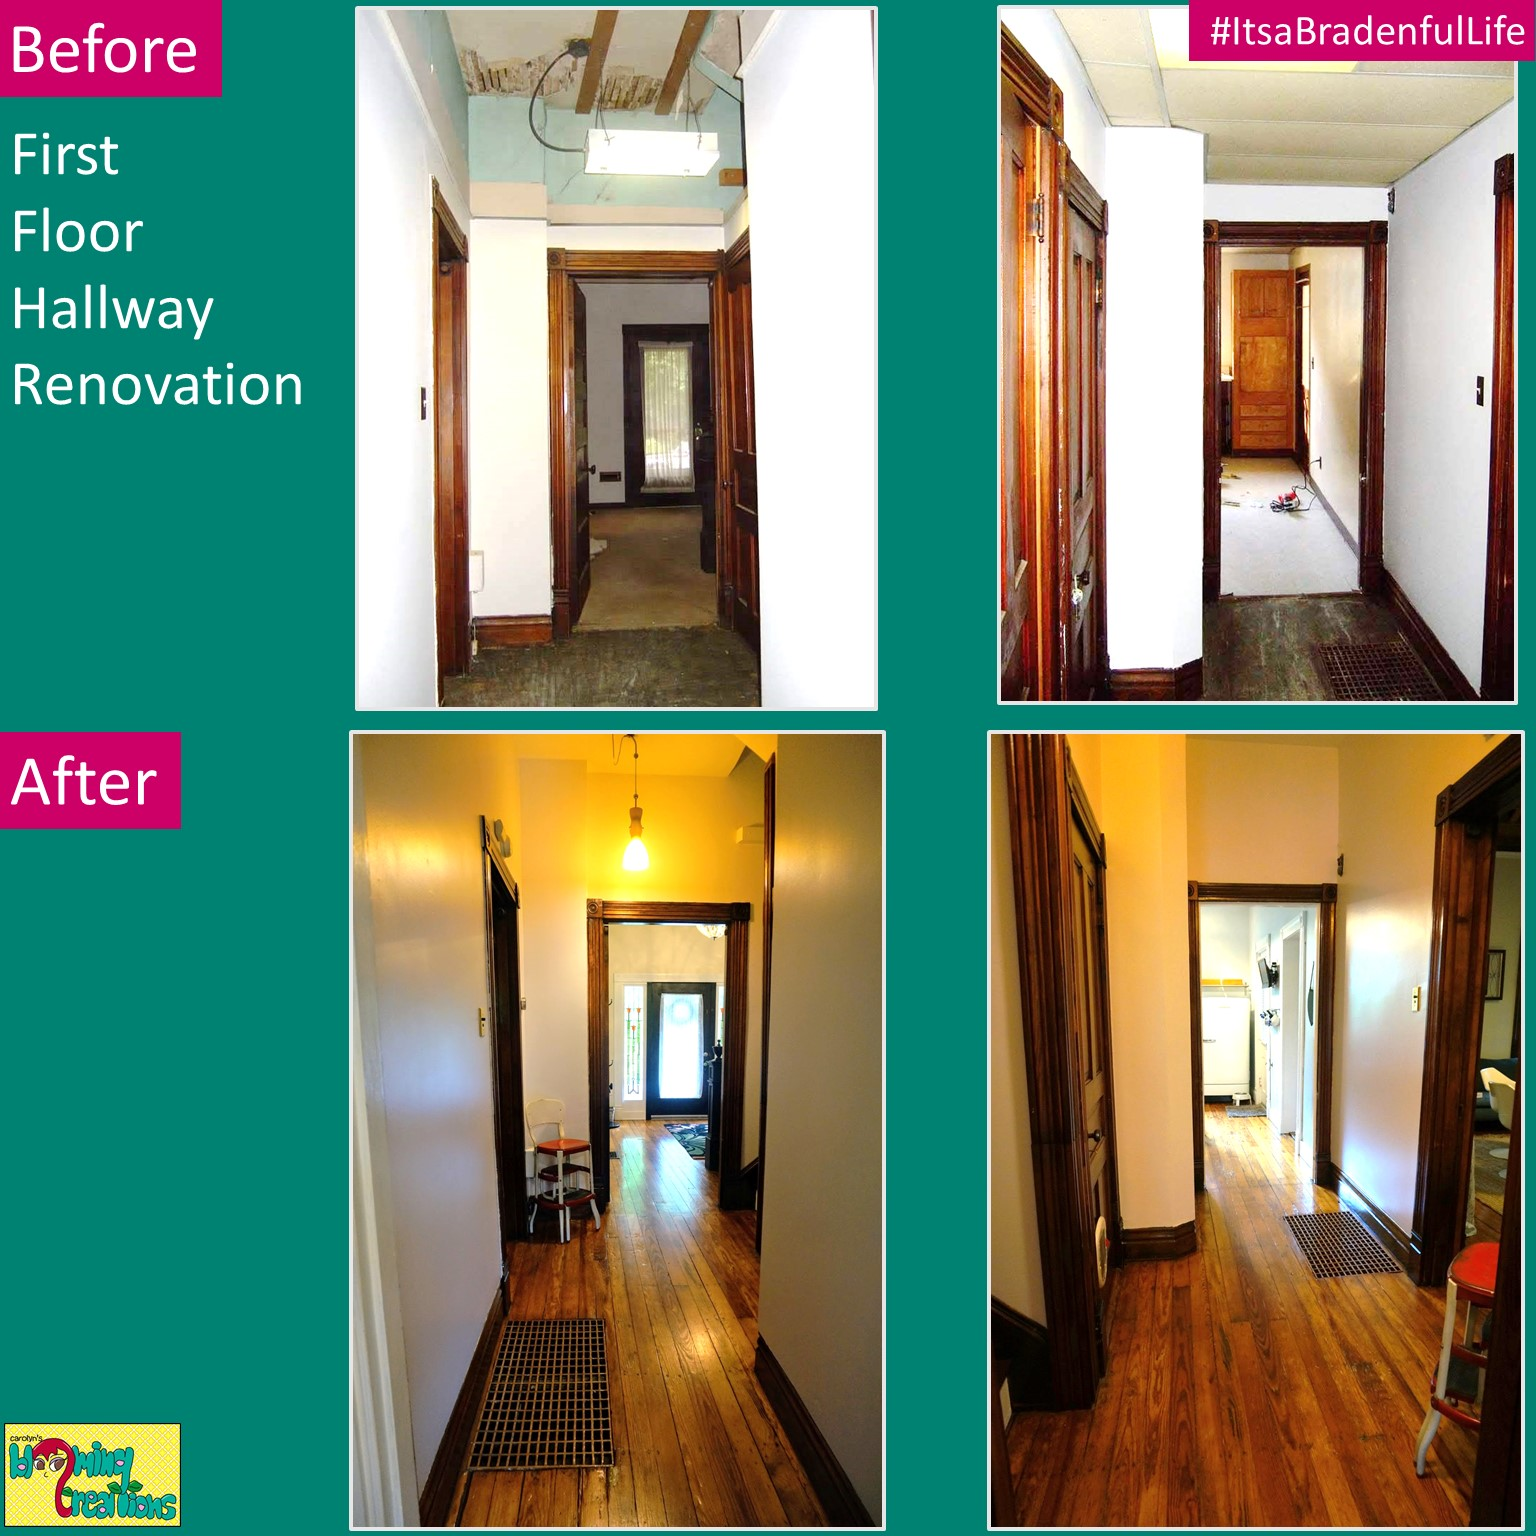 First Floor Hallway Before and After Carolyn Braden Itsabradenfullife.jpg